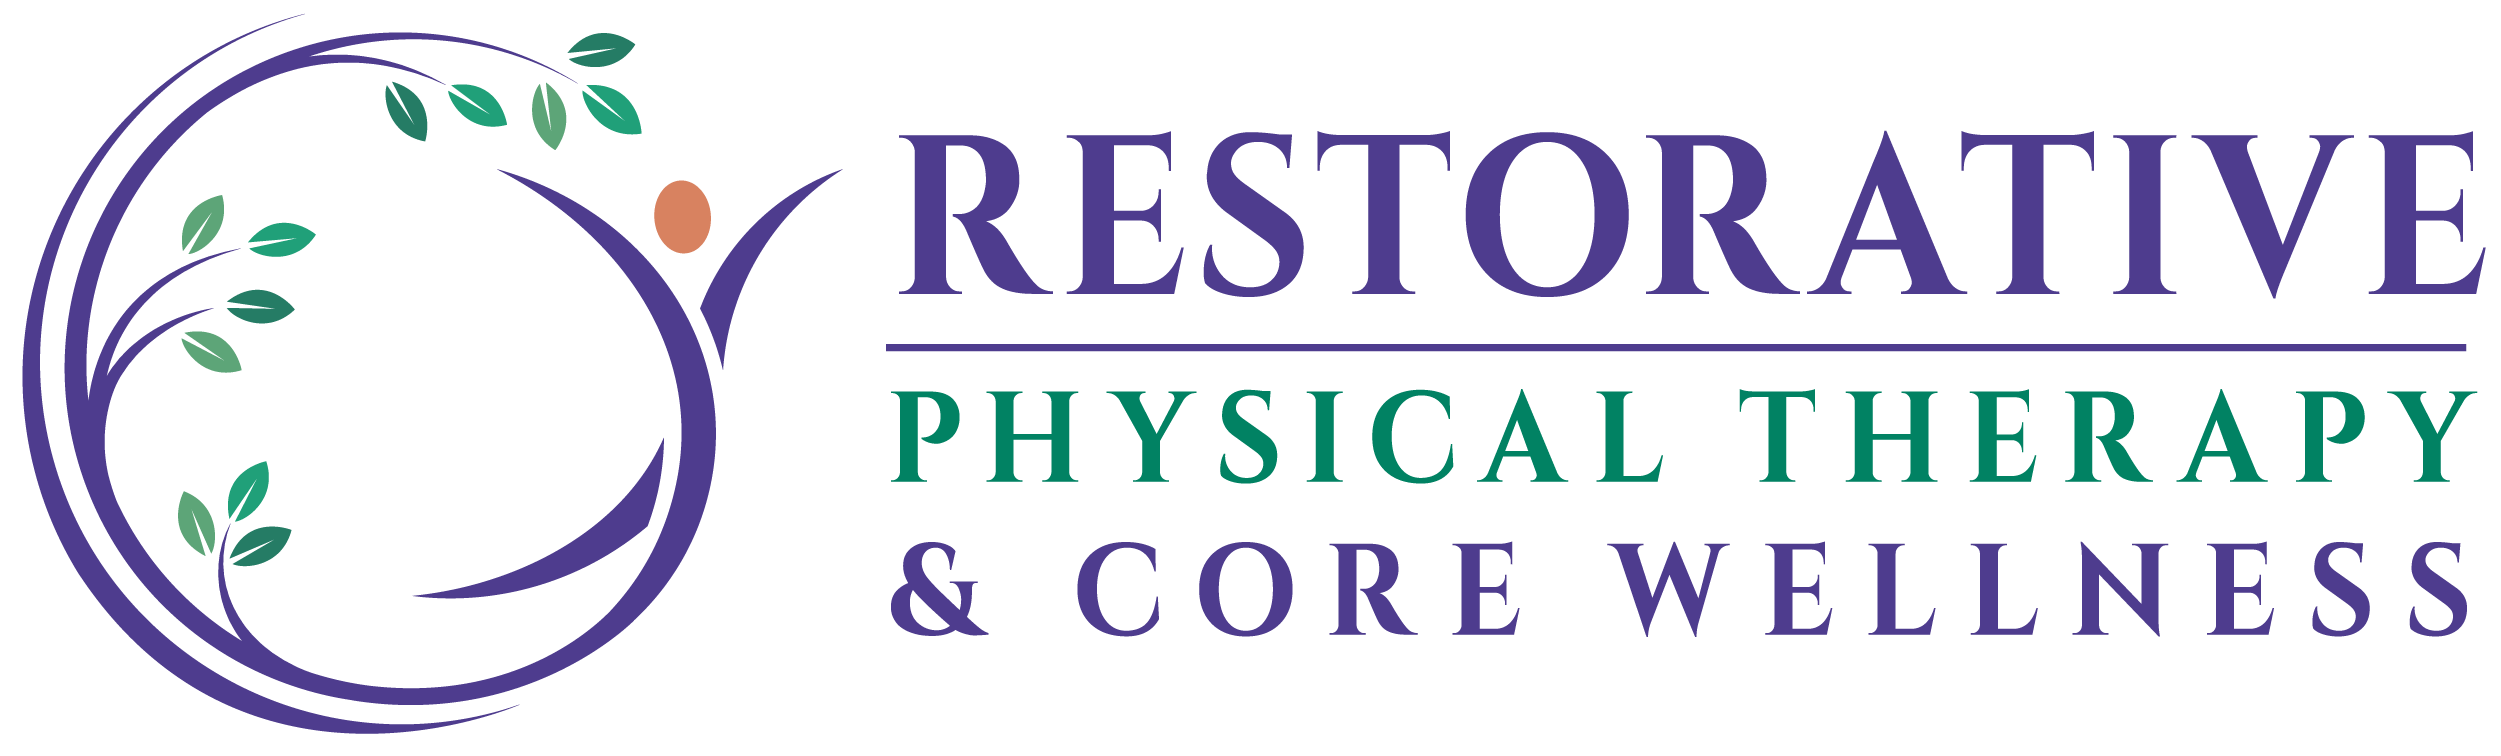 Restorative Physical Therapy and Core Wellness